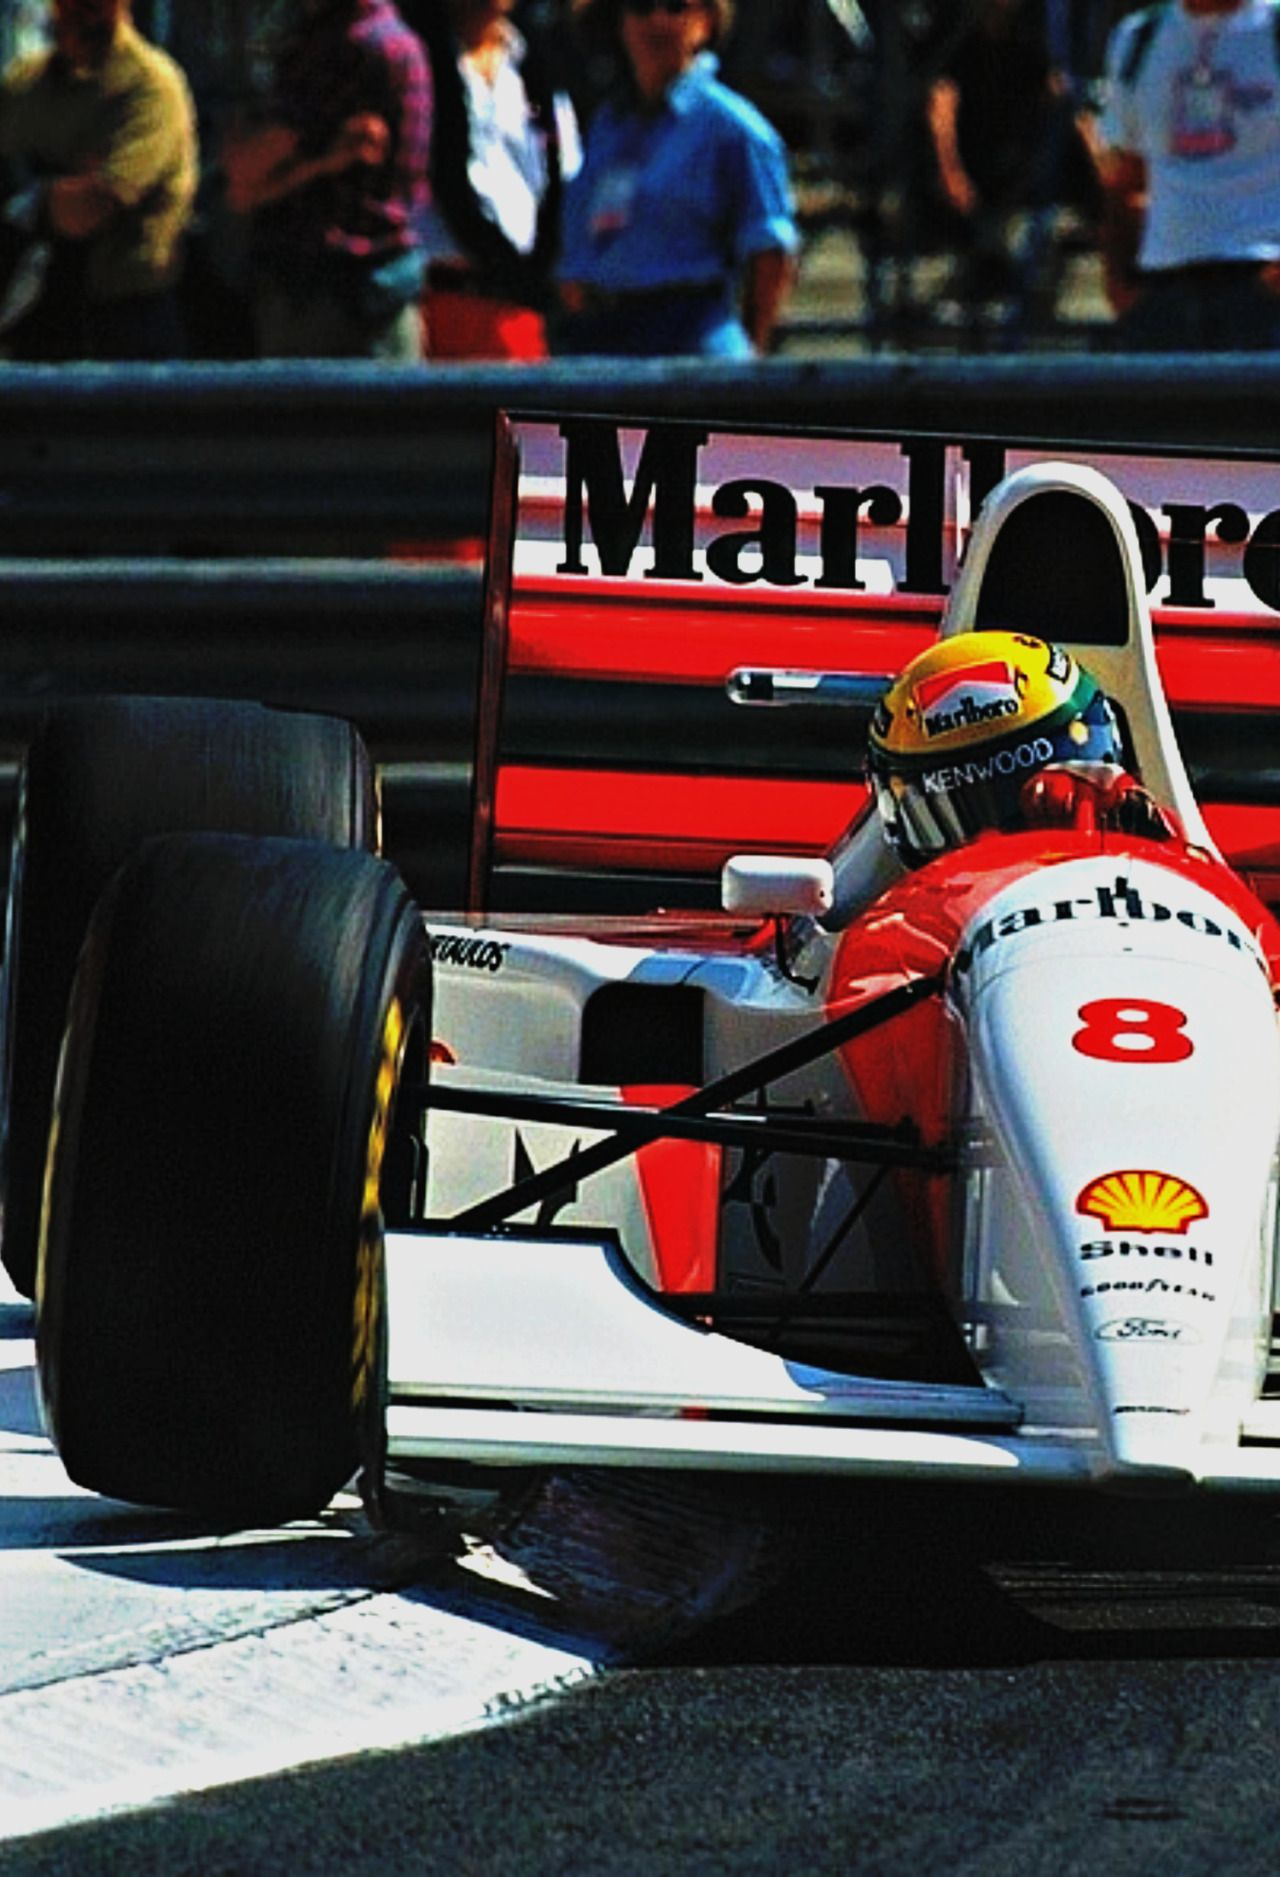 f1championship ayrton senna l monaco 1993 ayrton senna pinterest formule 1 voiture. Black Bedroom Furniture Sets. Home Design Ideas